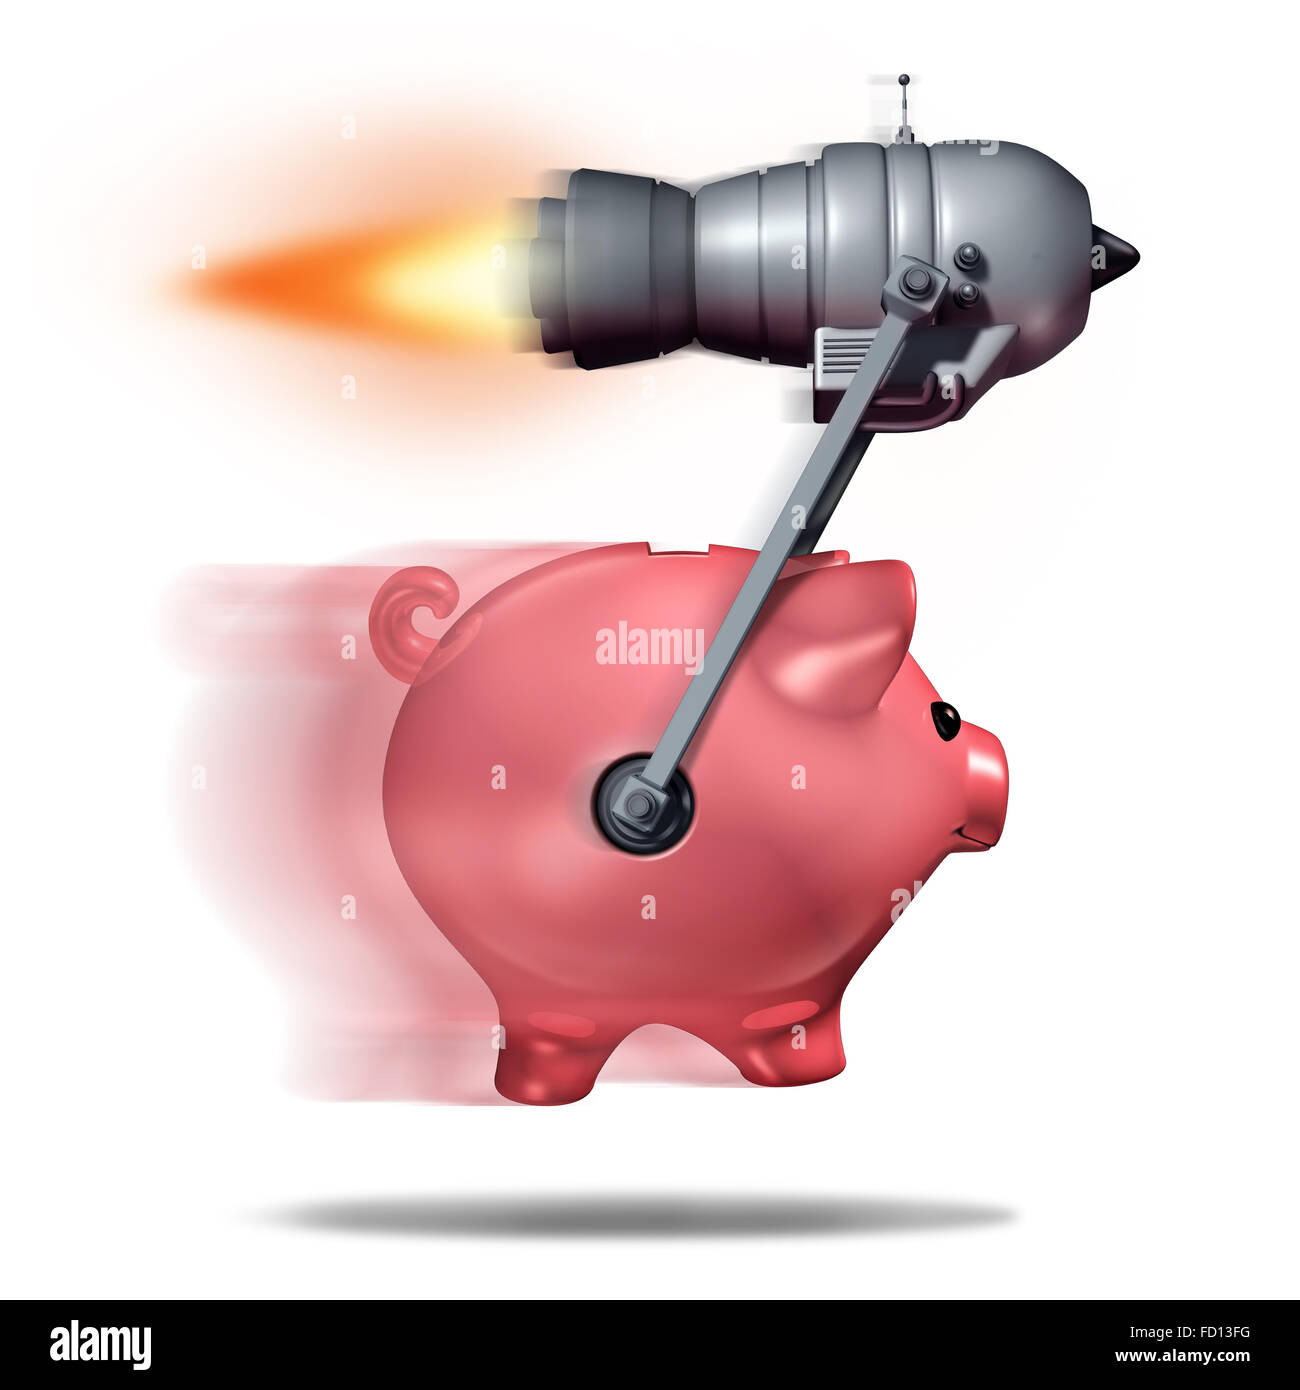 Fast cash concept and business success symbol as a piggy bank being accelerated by a rocket engine as a metaphor - Stock Image